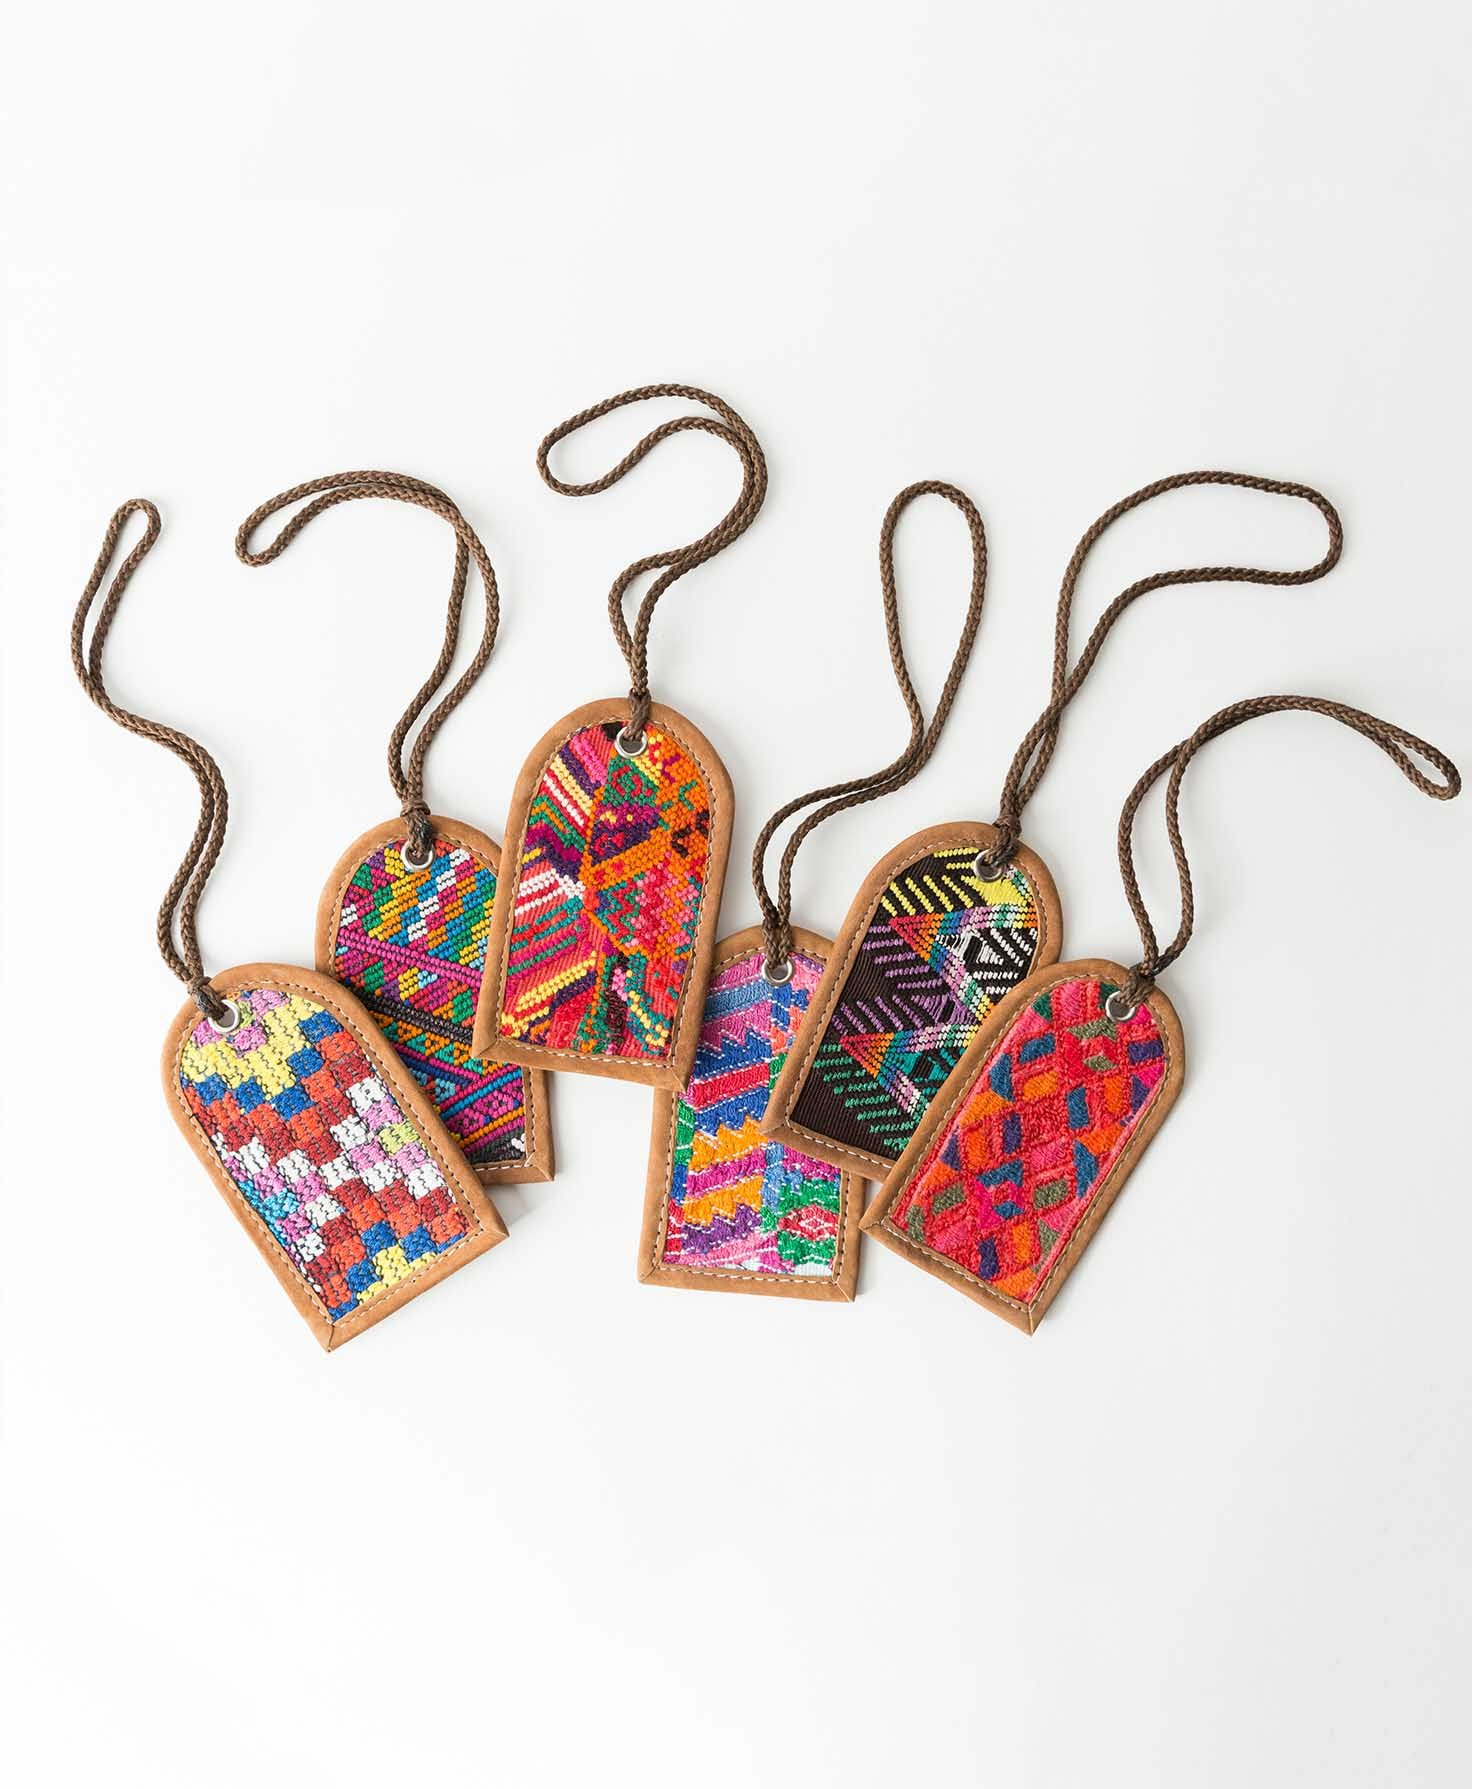 Six Huipil Luggage Tags lay on a white surface. Each features a different patterned woven textile. The color palettes vary, but most feature bright shades of pink, orange, red, blue, and purple.